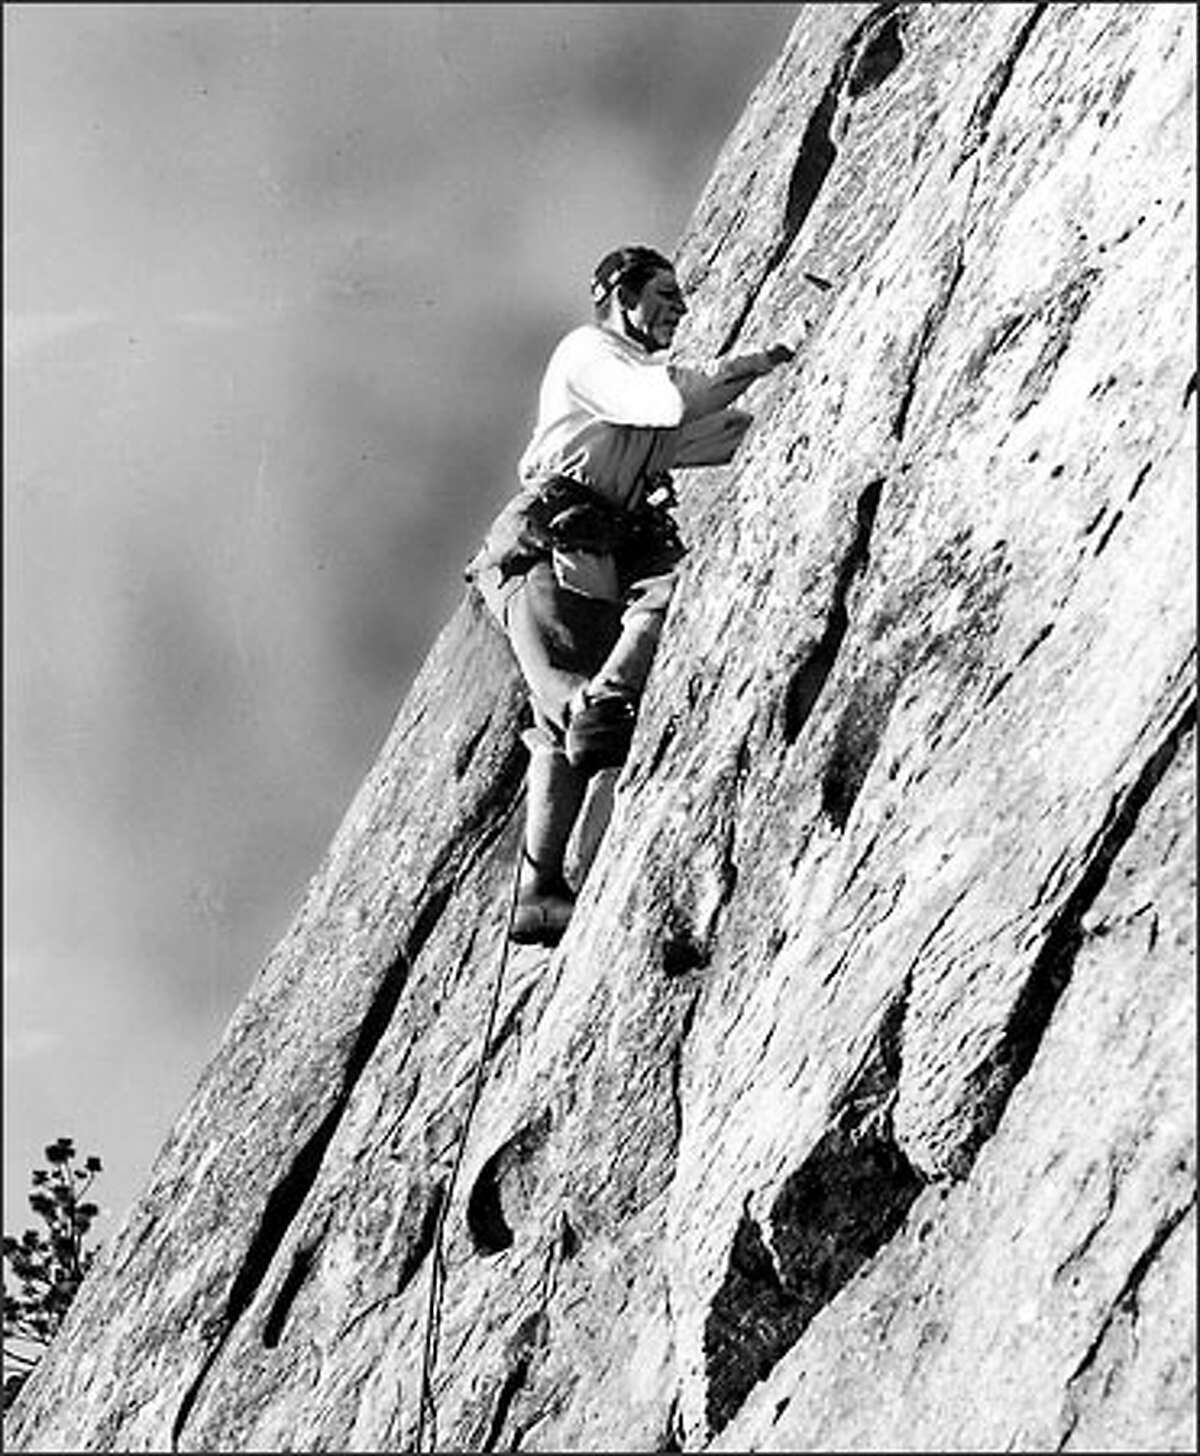 1963-Fred Beckey, mountain climber, on a rock slab.